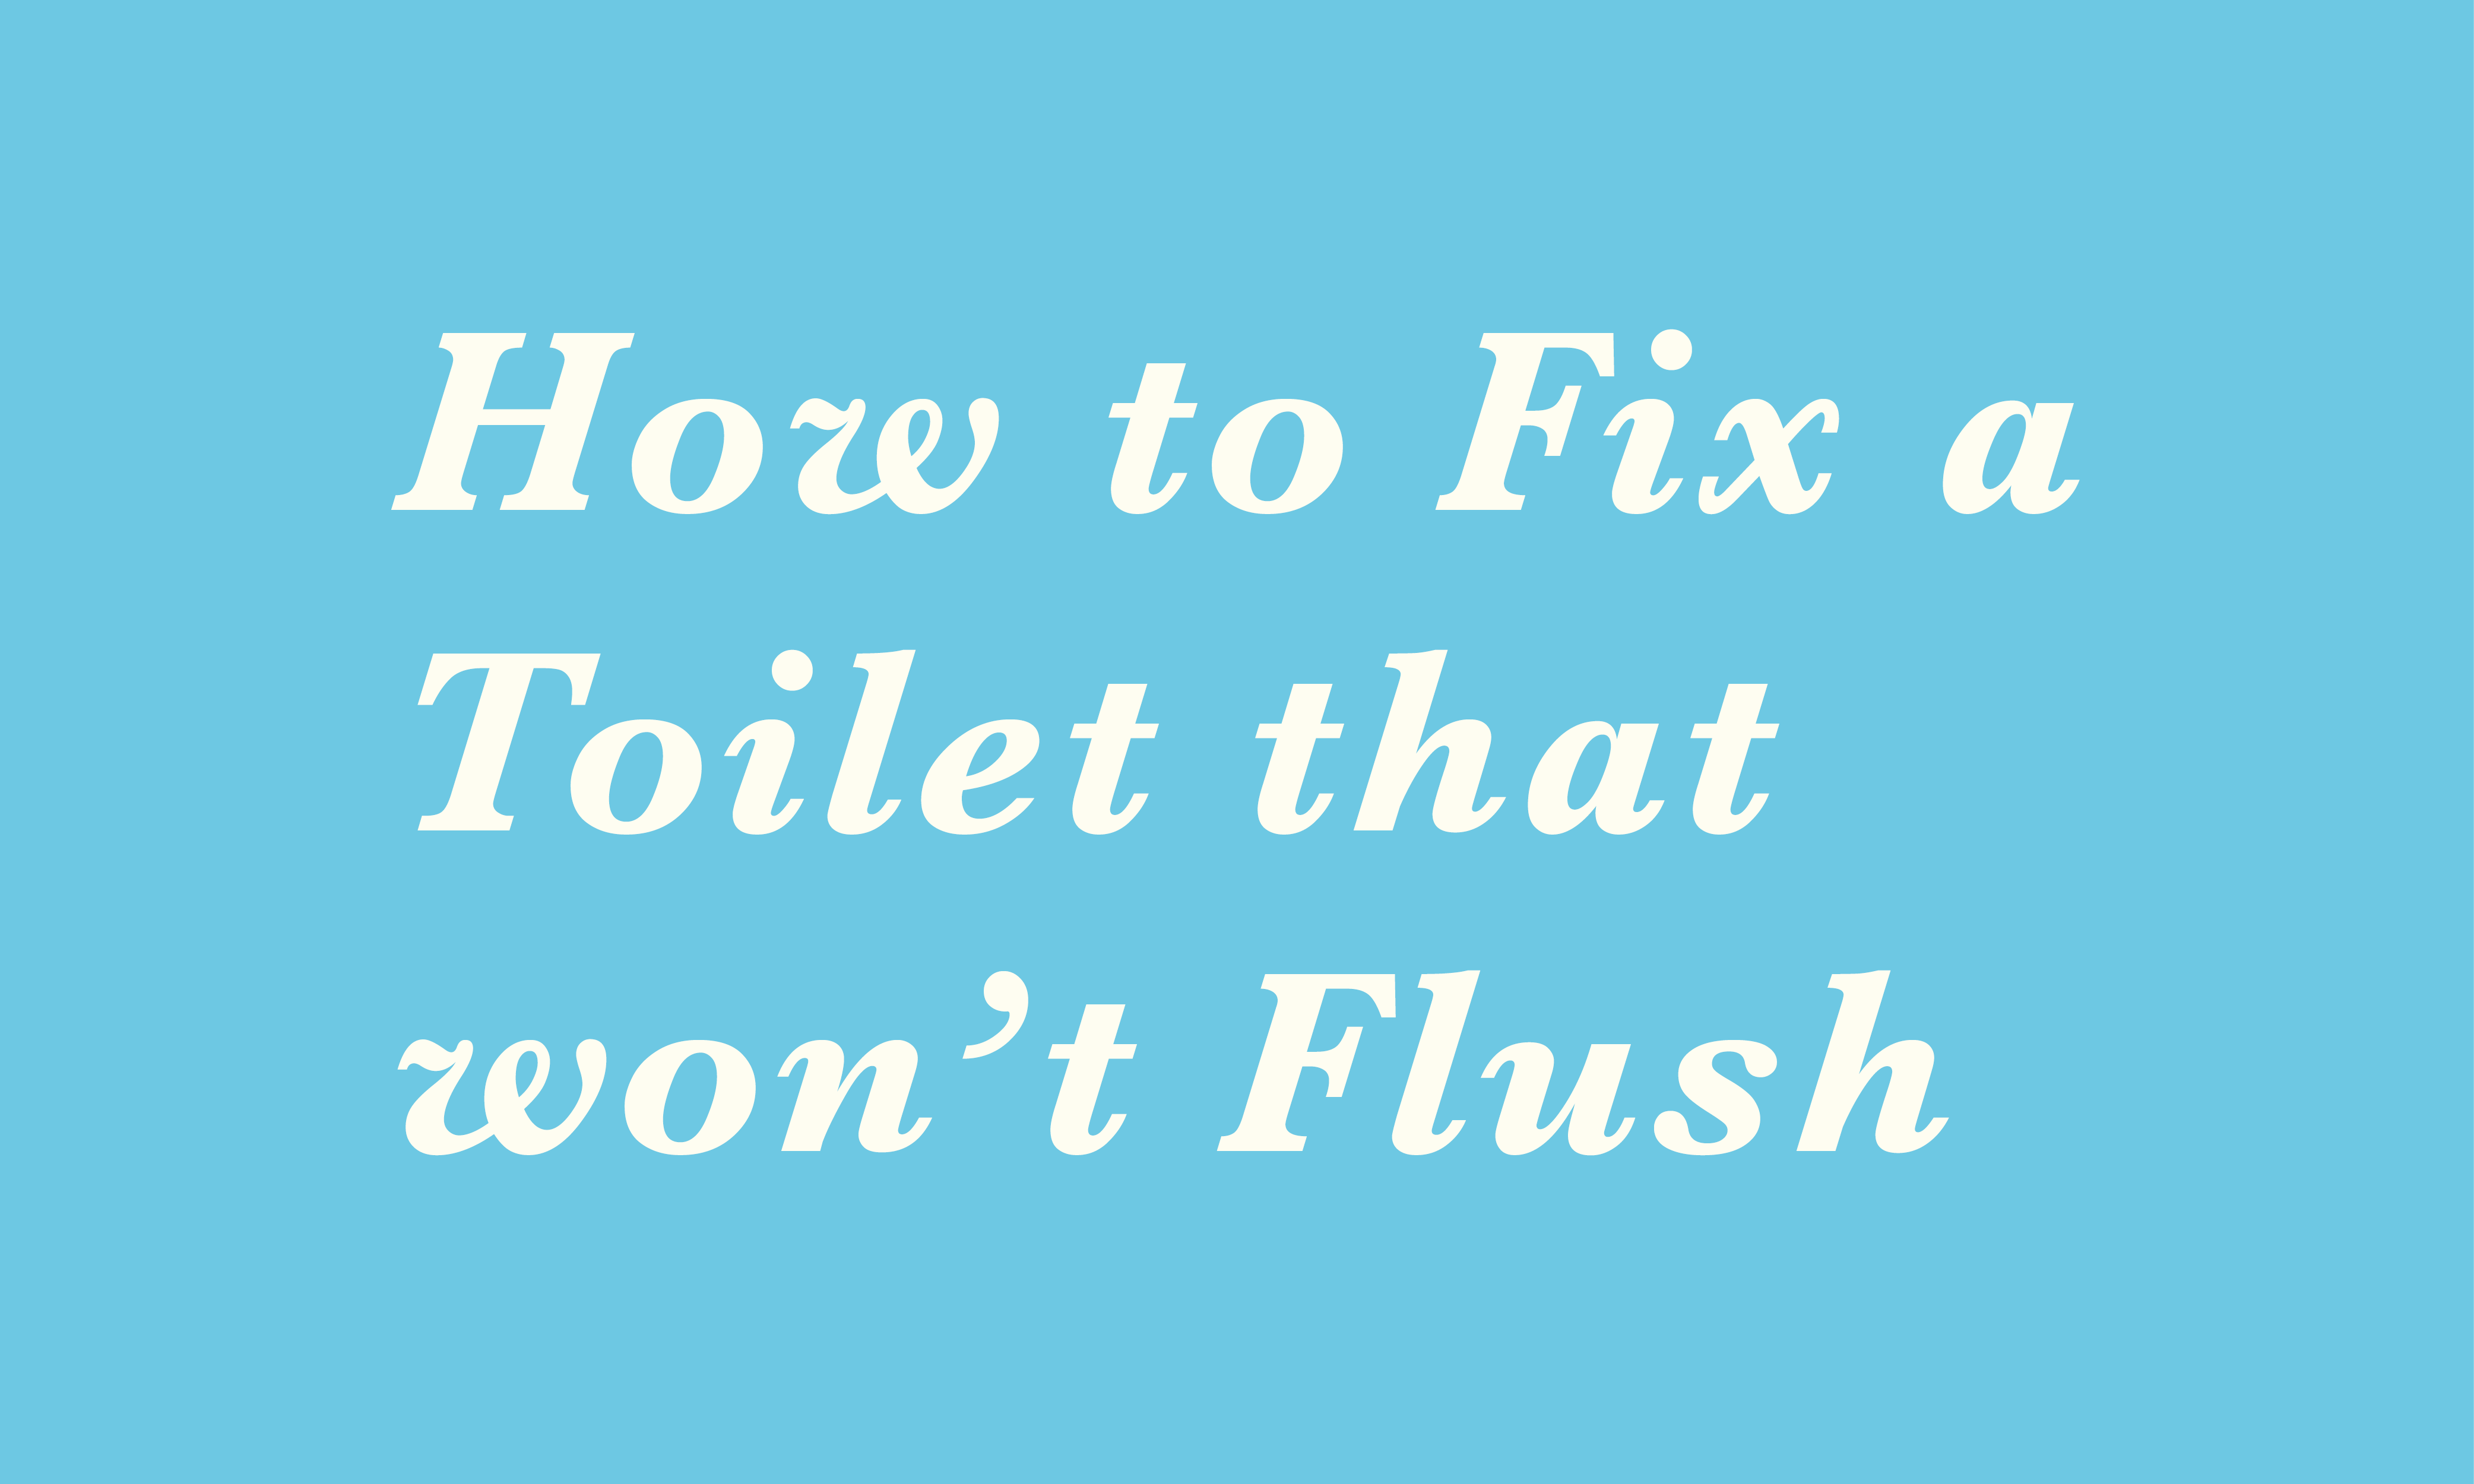 How to fix a toilet that won't flush